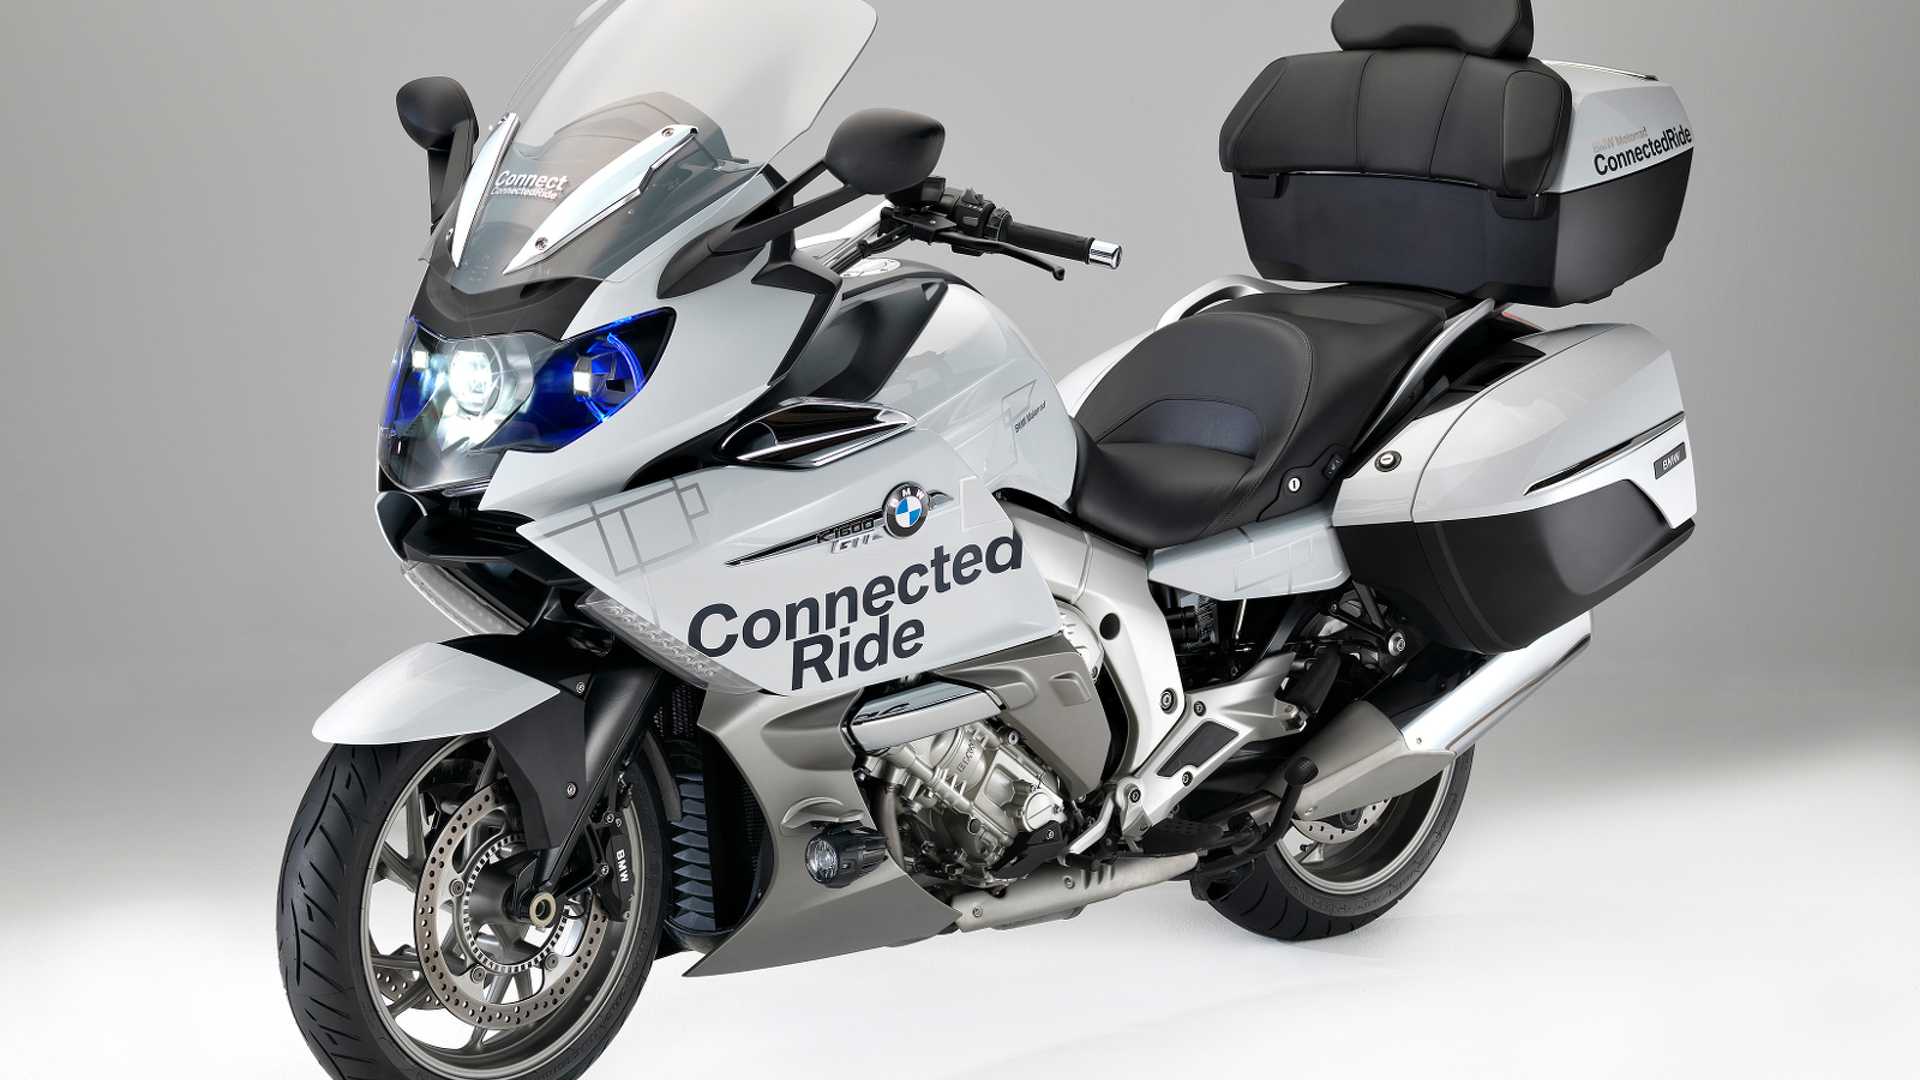 bmw k 1600 gtl concept unveiled with laser headlights. Black Bedroom Furniture Sets. Home Design Ideas